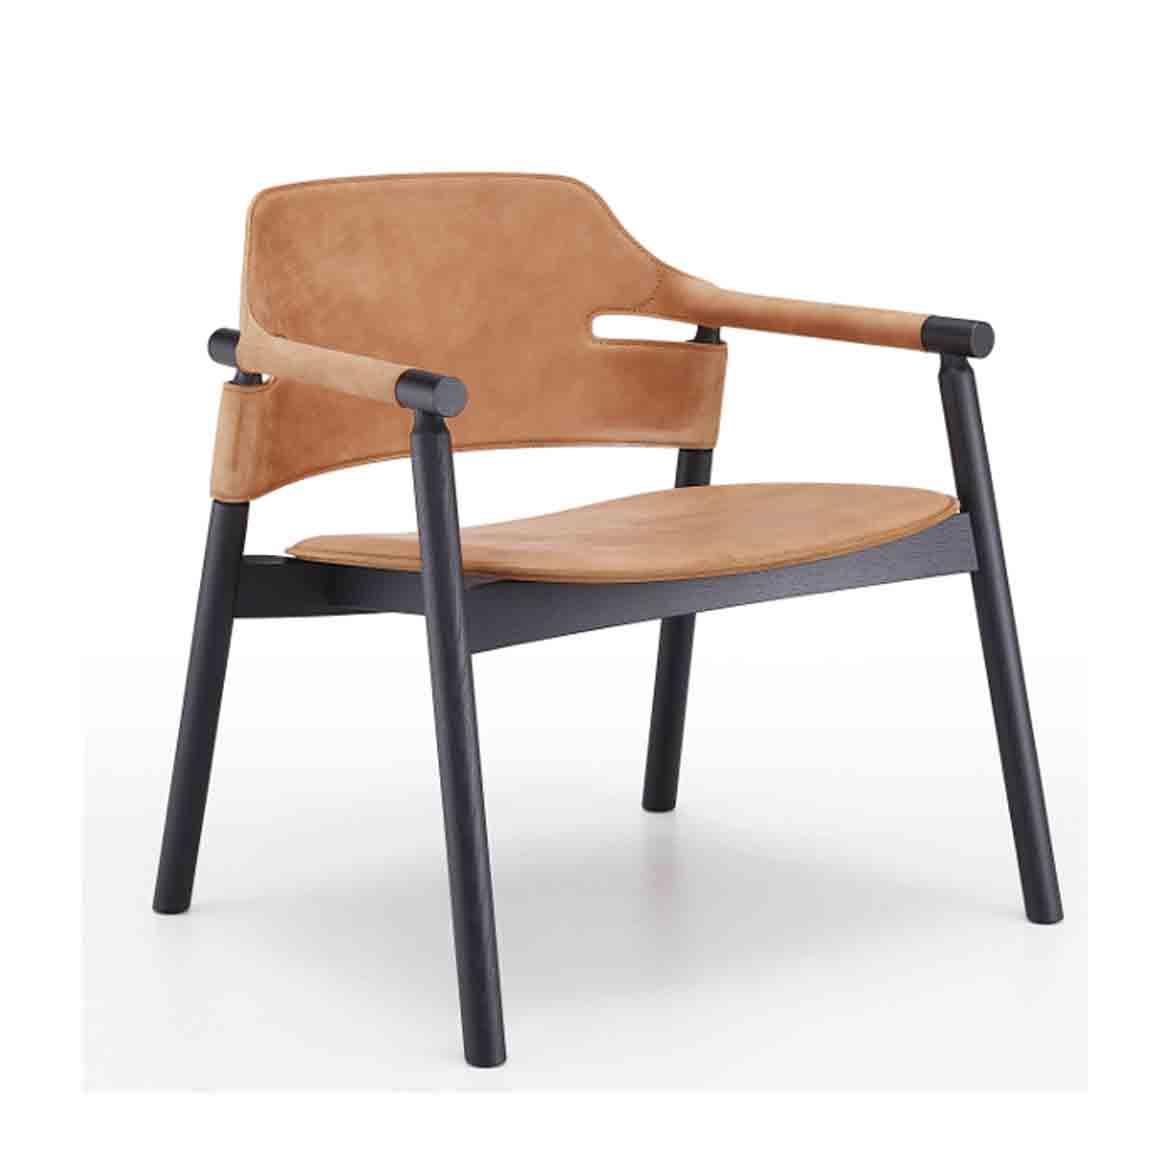 Loungechair with wooden frame. Seat and backrest in hide.